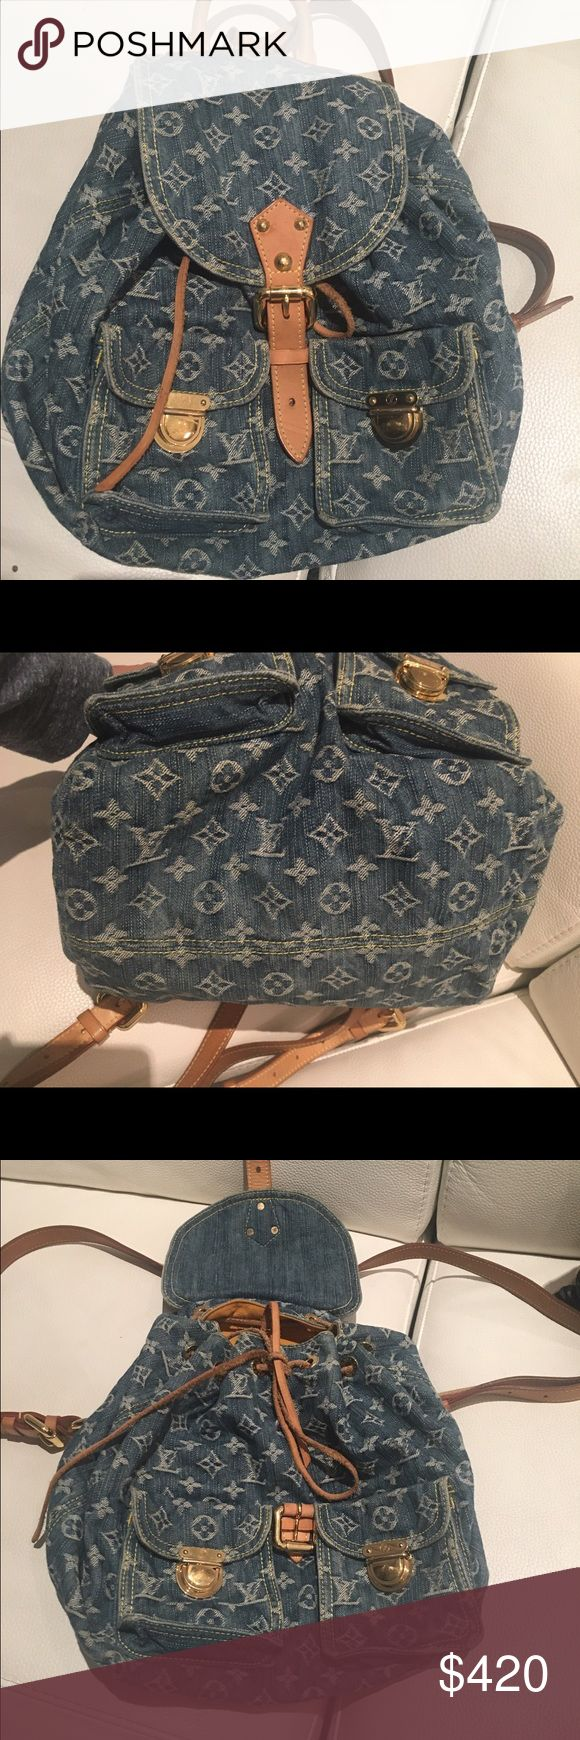 Louis Vuitton Denim Backpack Authentic LV Sac a Dos Denim Monogram GM.Gently used, some pen marks in the interior. Louis Vuitton Bags Backpacks